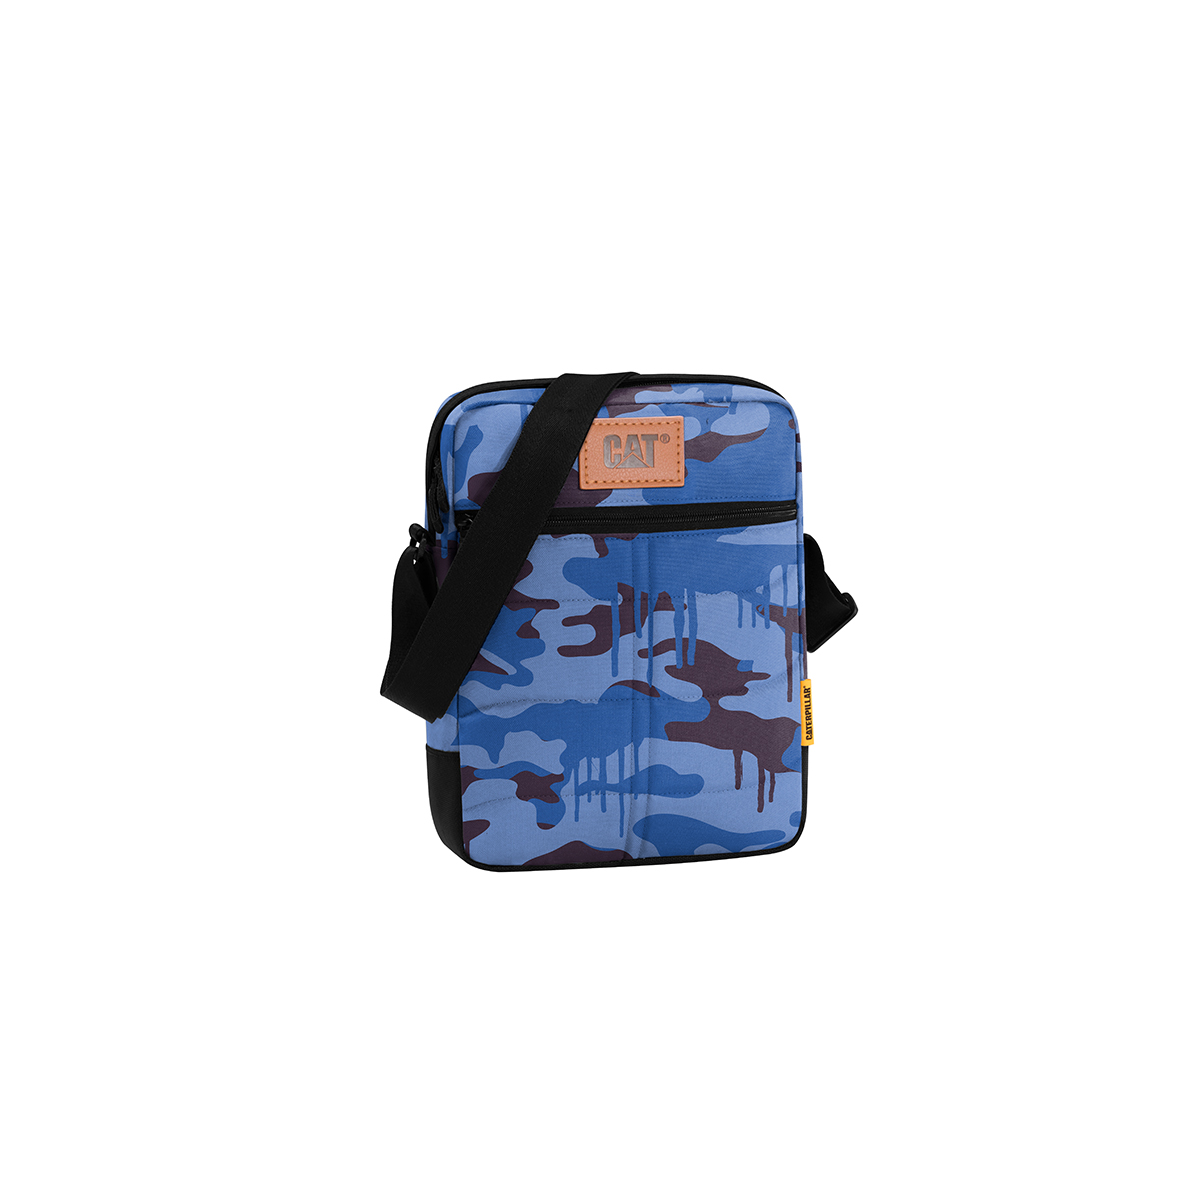 Jual CATERPILLAR Ryan - Dripping Camo Blue Caterpillar Bags   Luggage f4754ee7ec